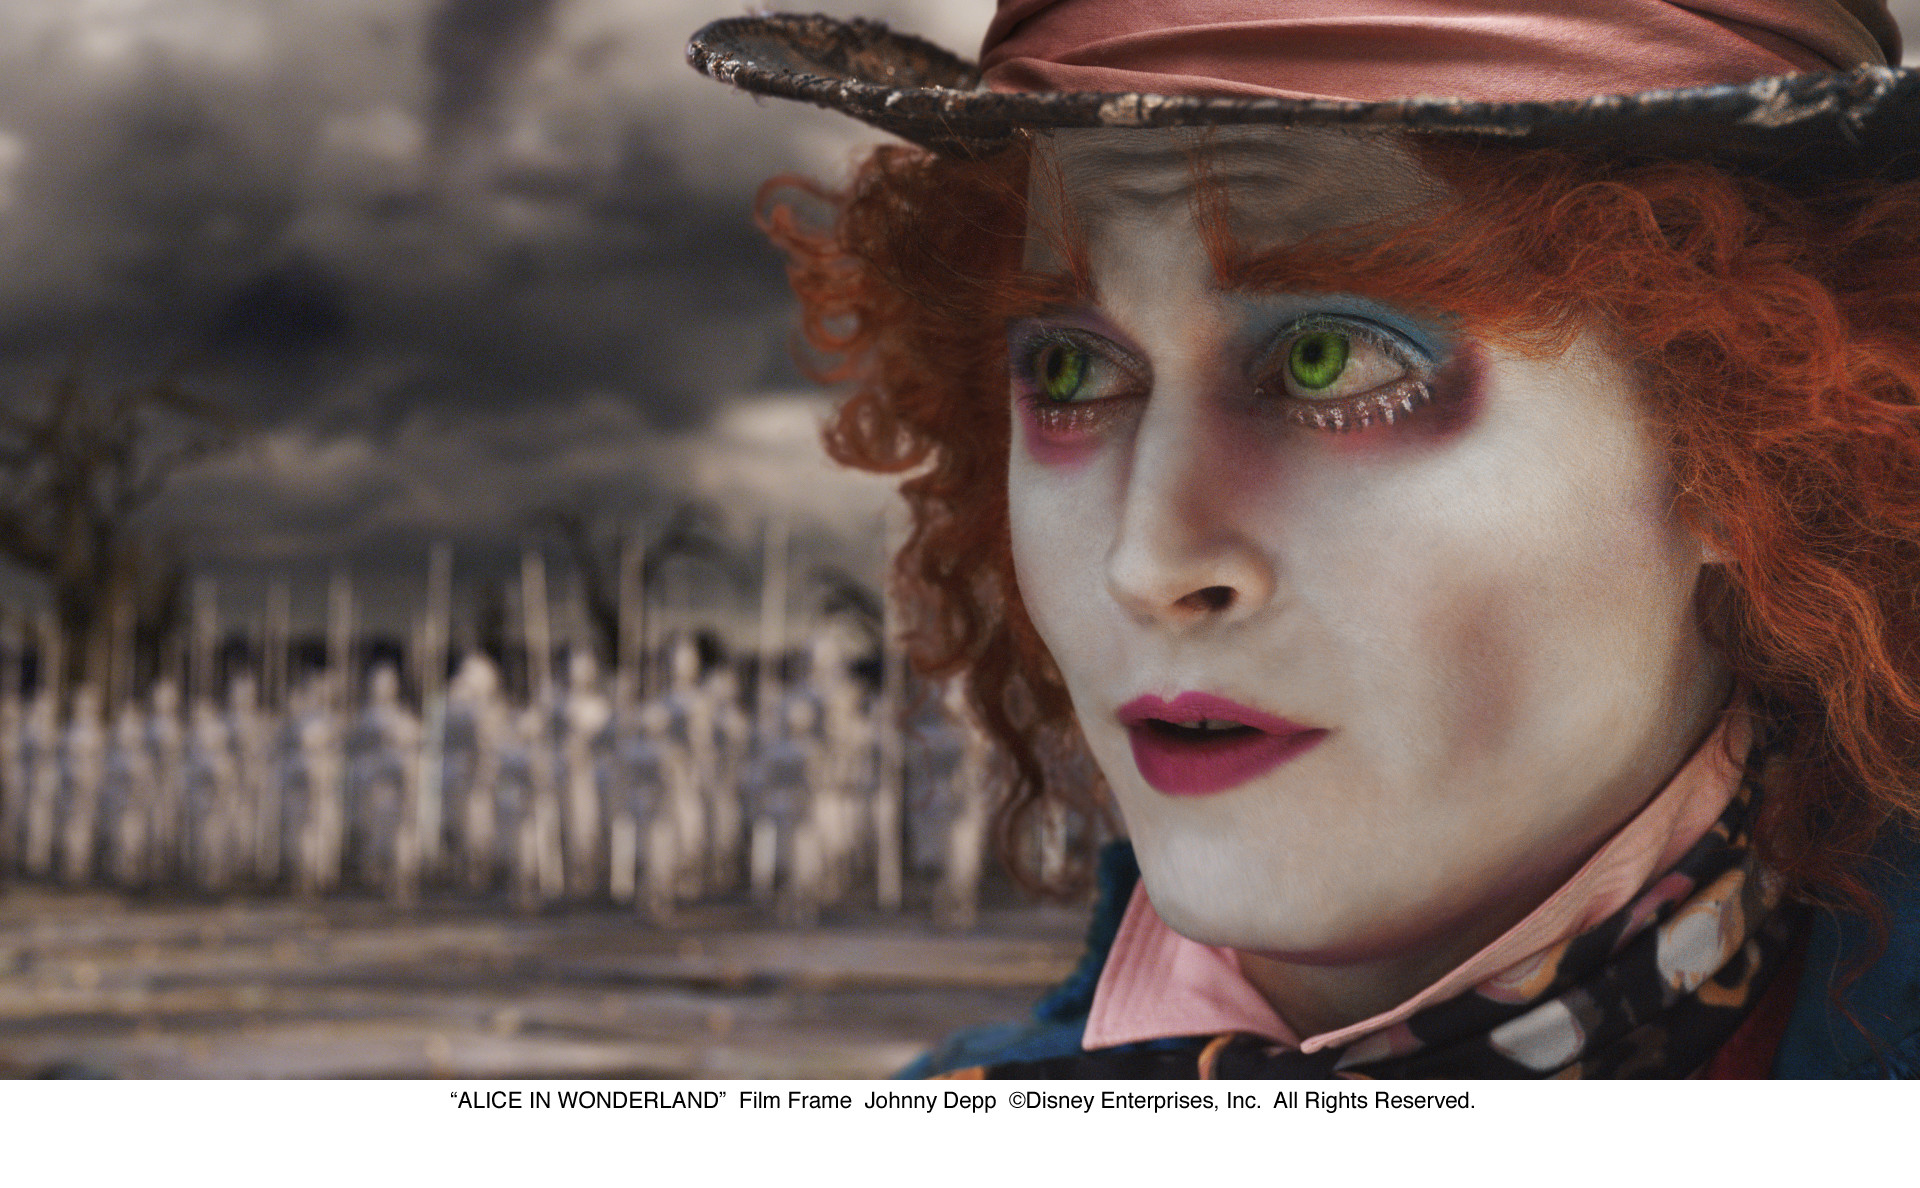 1920x1188 Alice in Wonderland movie image 12